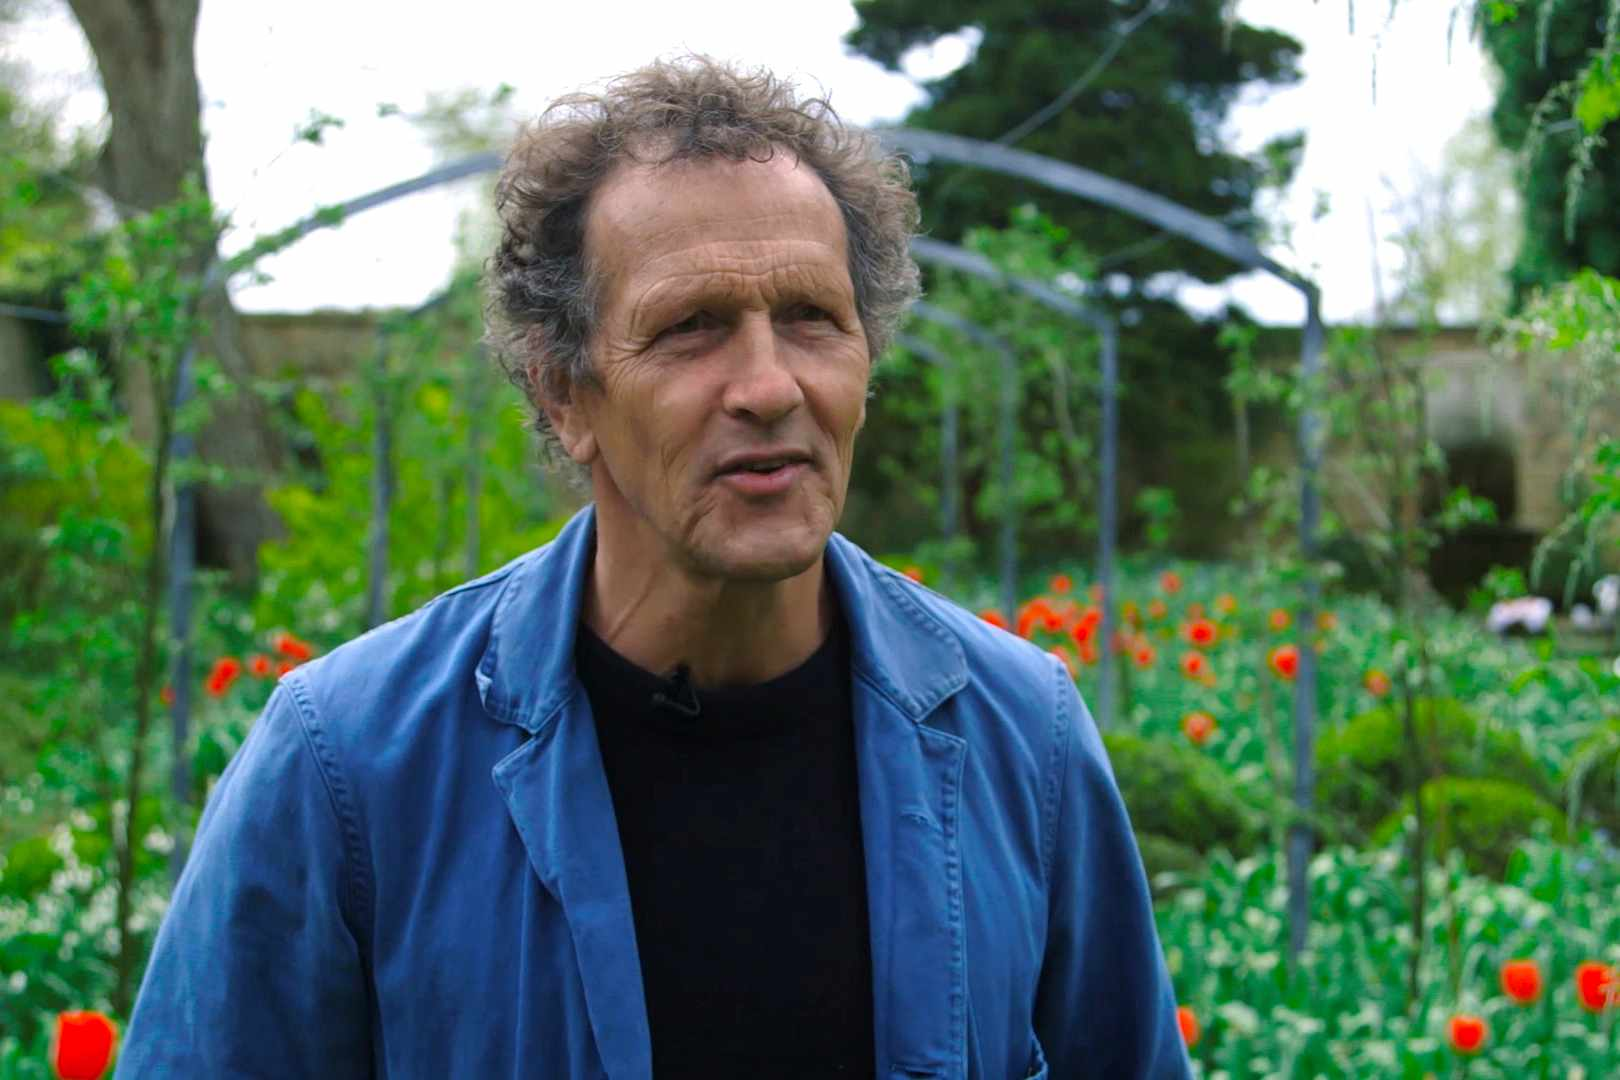 Monty Don discussing his dogs video